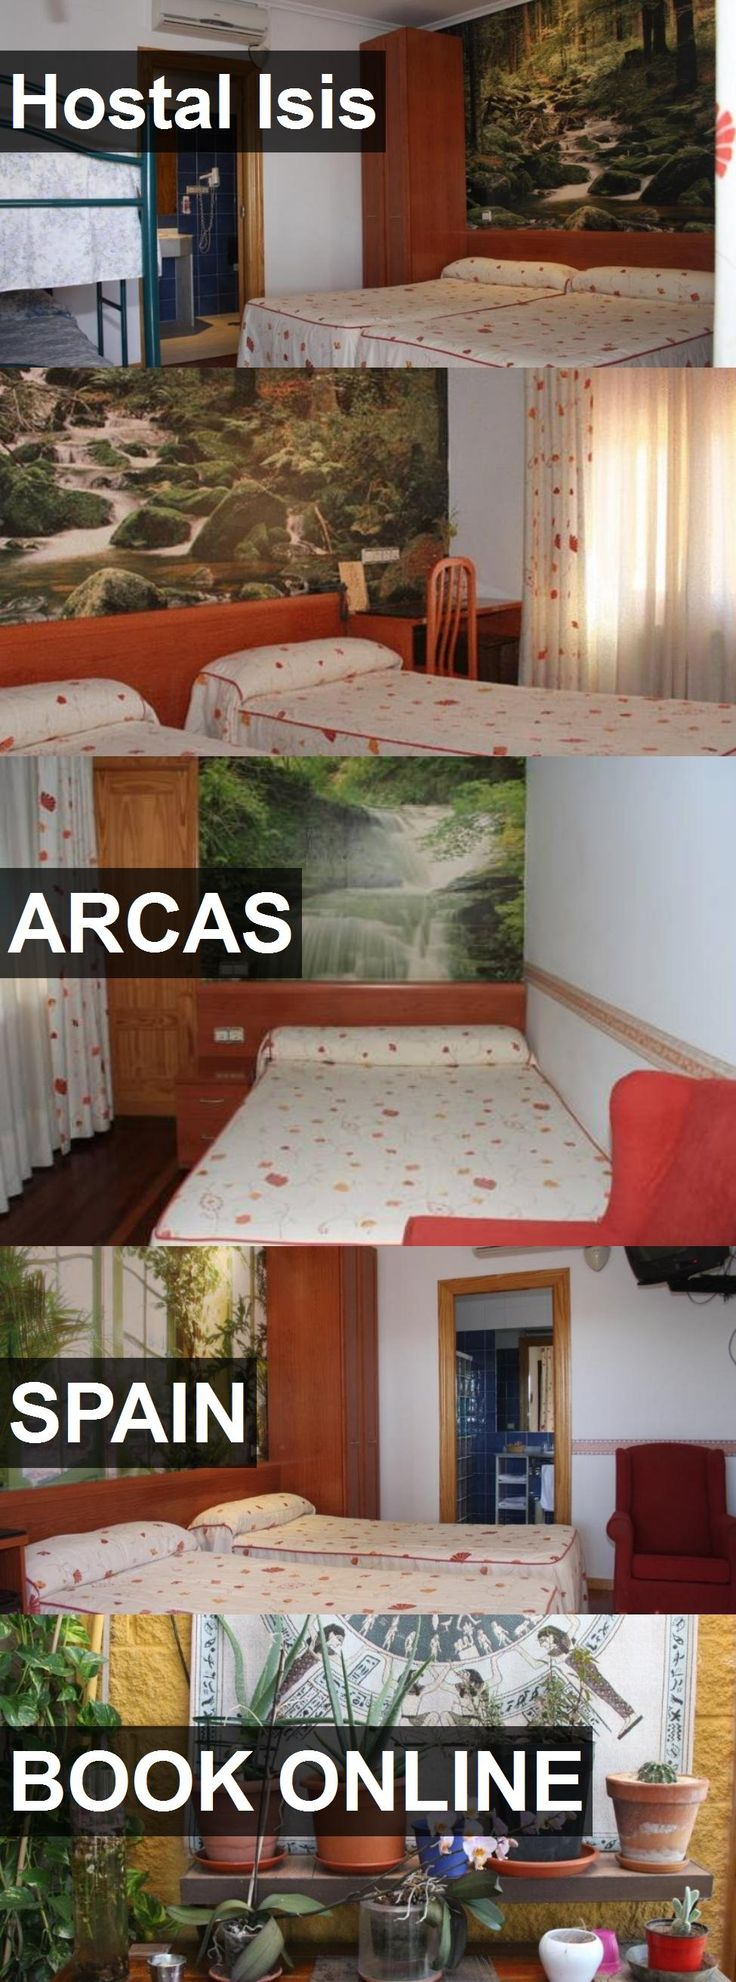 Hotel Hostal Isis in Arcas, Spain. For more information, photos, reviews and best prices please follow the link. #Spain #Arcas #HostalIsis #hotel #travel #vacation